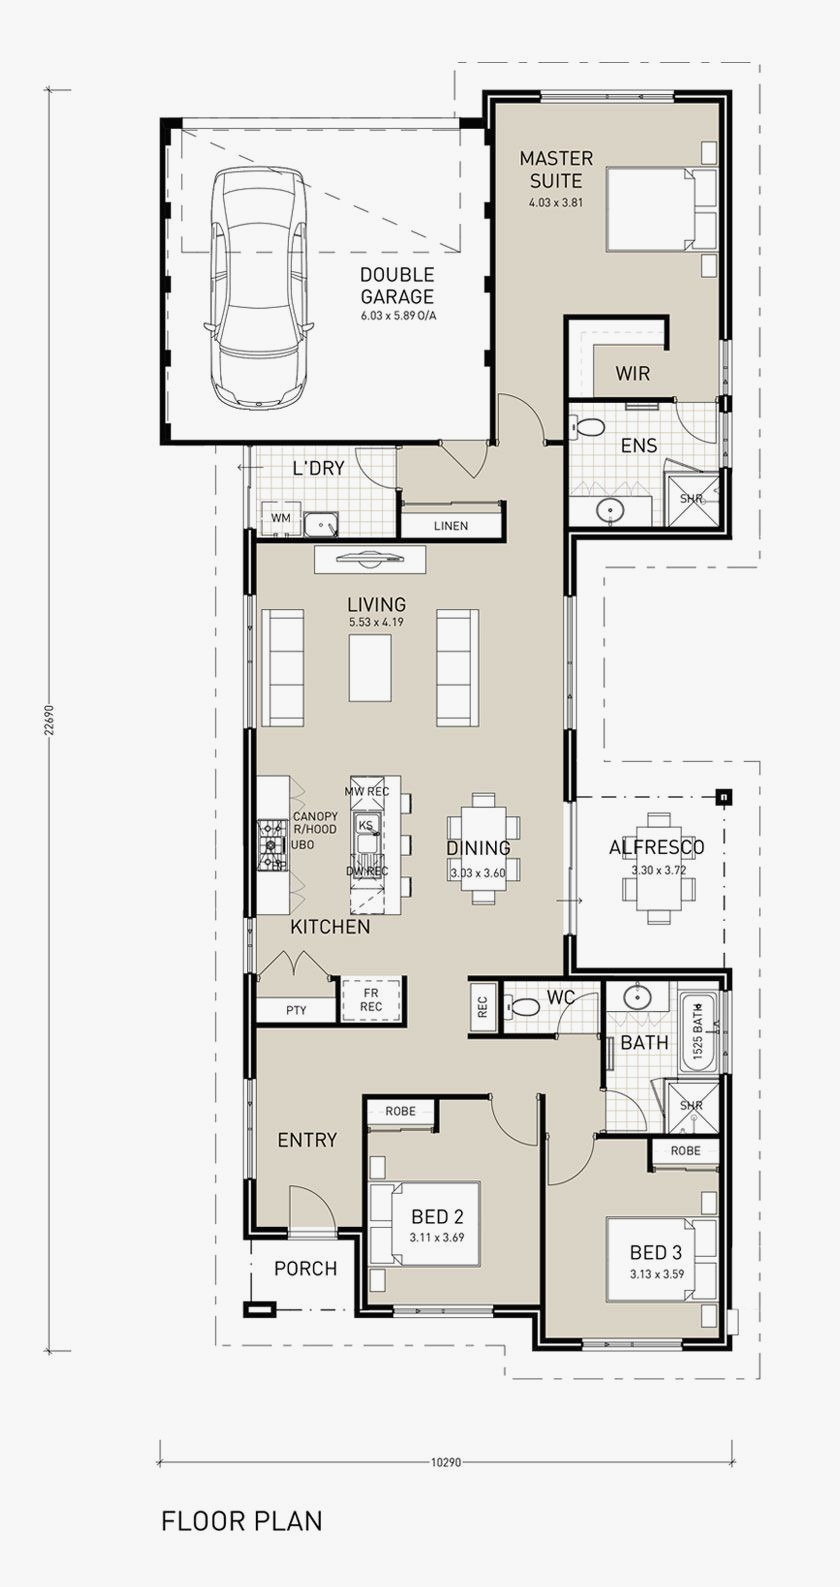 3 storey house plans for small lots best of marvellous design single storey house plans for narrow lots 2 small lot story plans bbaaffa of 3 storey house plans for small lots